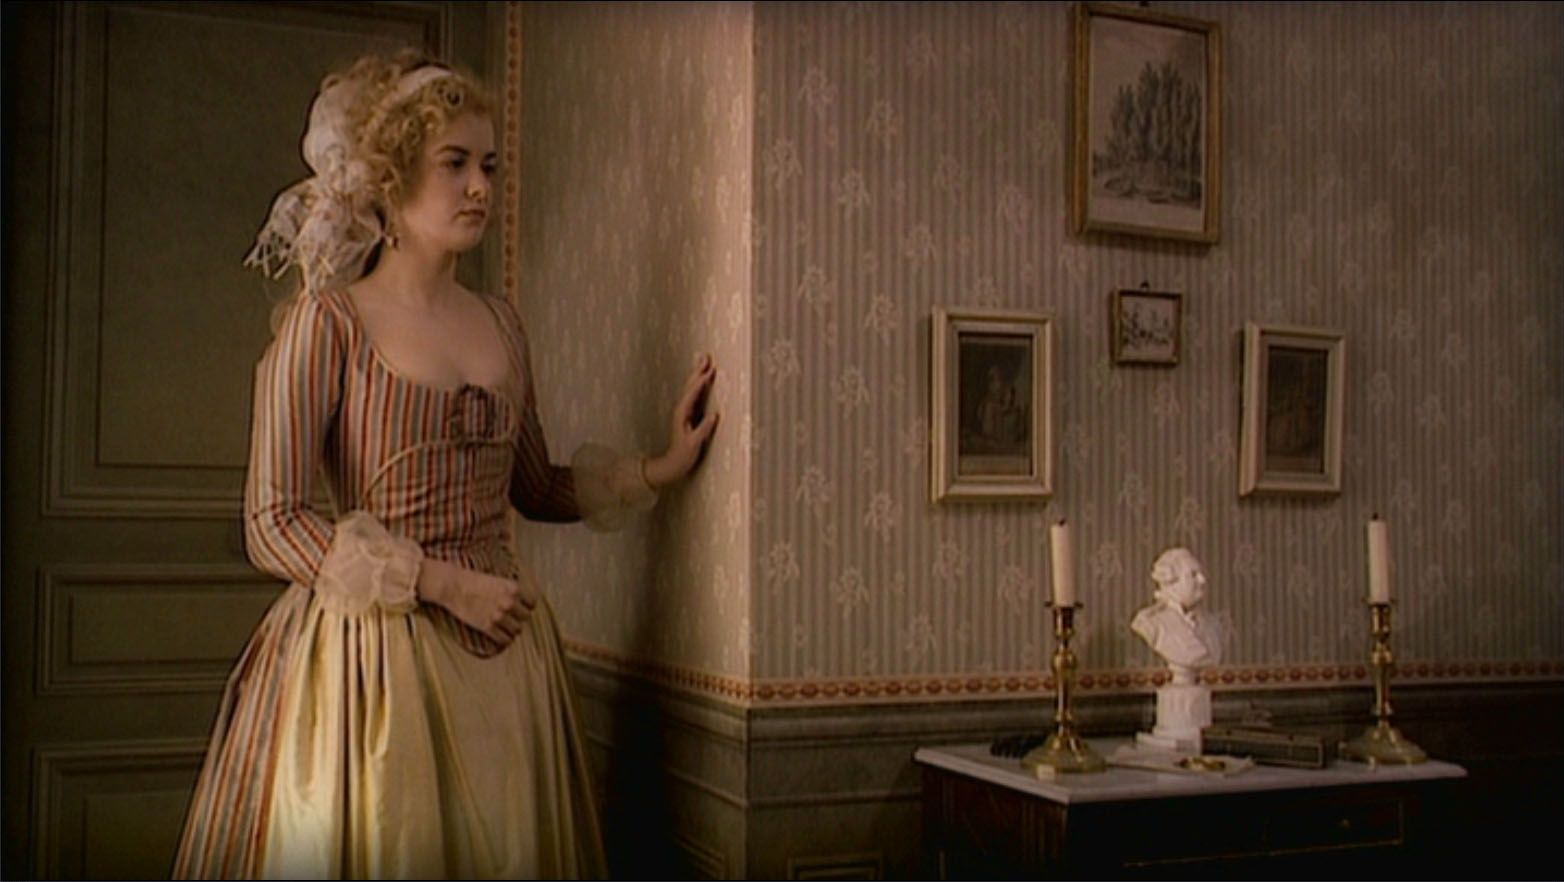 Dress from the Lady and the Duke.